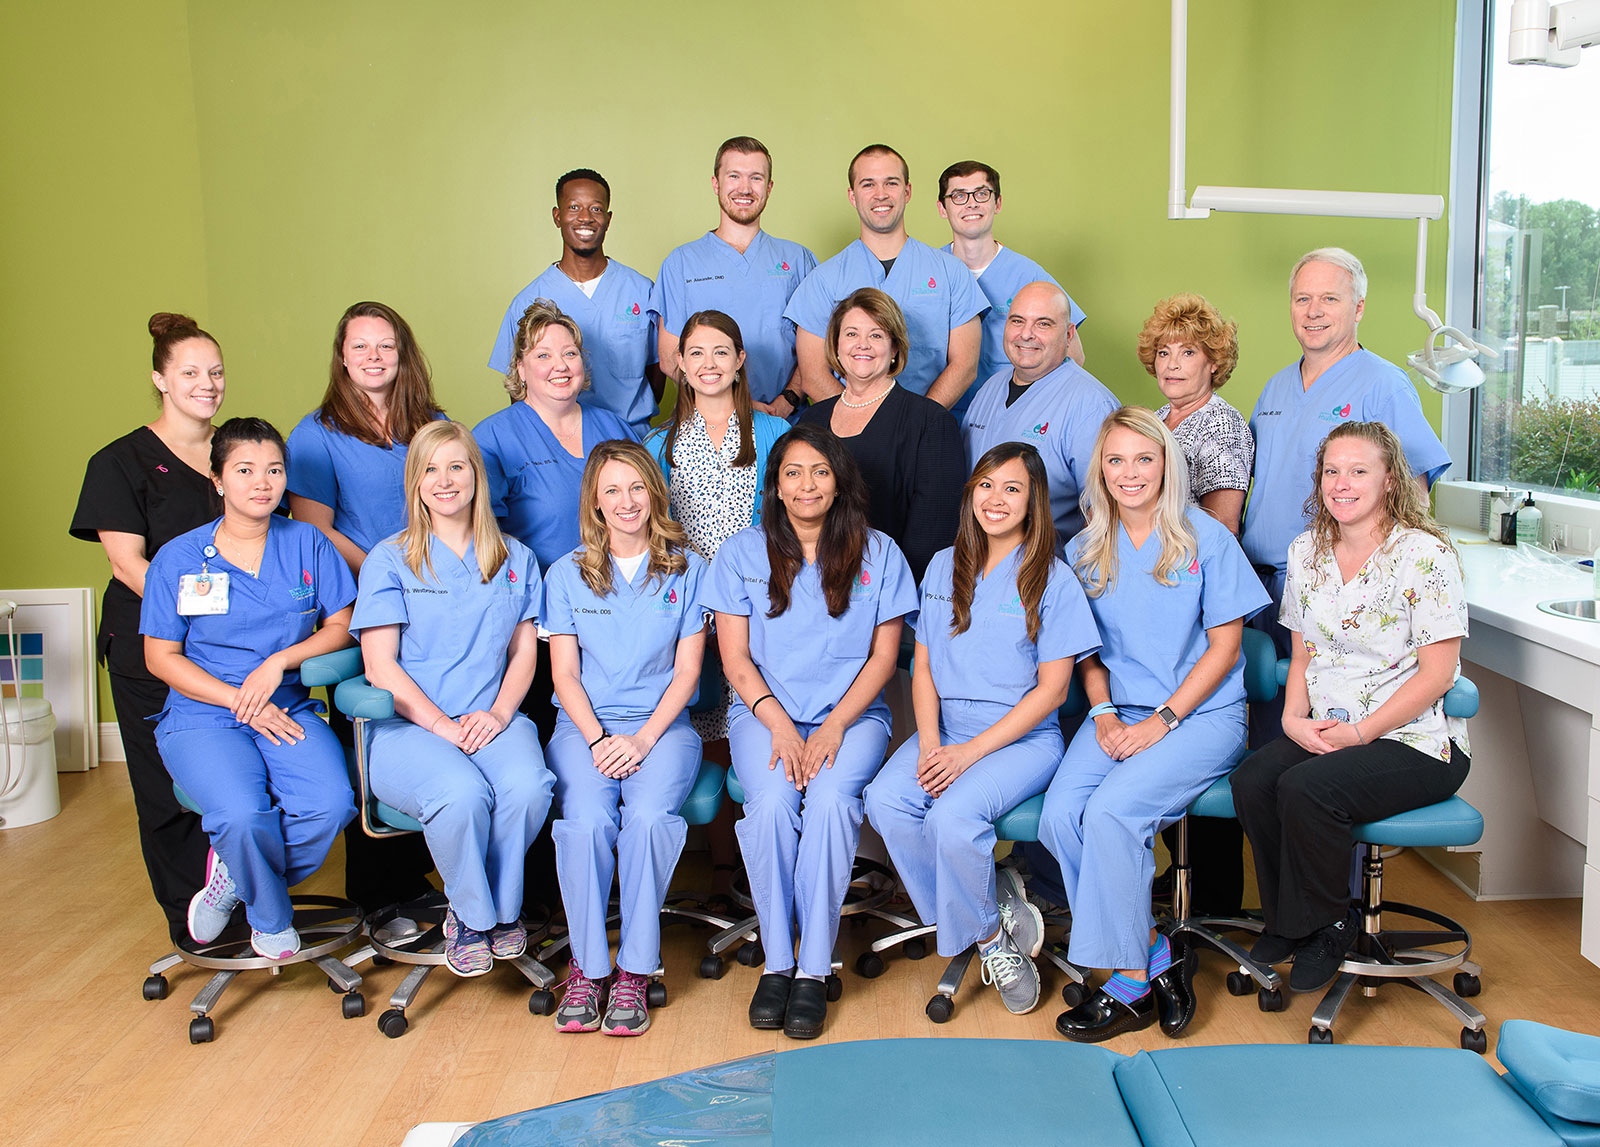 Bon Secours Medical Group | Pediatric Dental Associates Victor Amarteifio, DDS, Ian Alexander, DMD, Brian Schmitz, DMD, Carson Cruise, DMD, Madison Ayers, Brittany Chalkley, Lisa Childs, RN, Laura Cruise, Kitty Stallings, William Piscitelli, DDS, Linann Singer, John Unkel, DDS, MD, MPA, Krizzia Thomas, Molly Westbrook, DDS, Emily Cheek, DDS, Shital Patel, DDS, Brittany Ko, DDS, Jennifer Rominger, DMD, Tiffany Garnett (not pictured: Tiffany Jones)